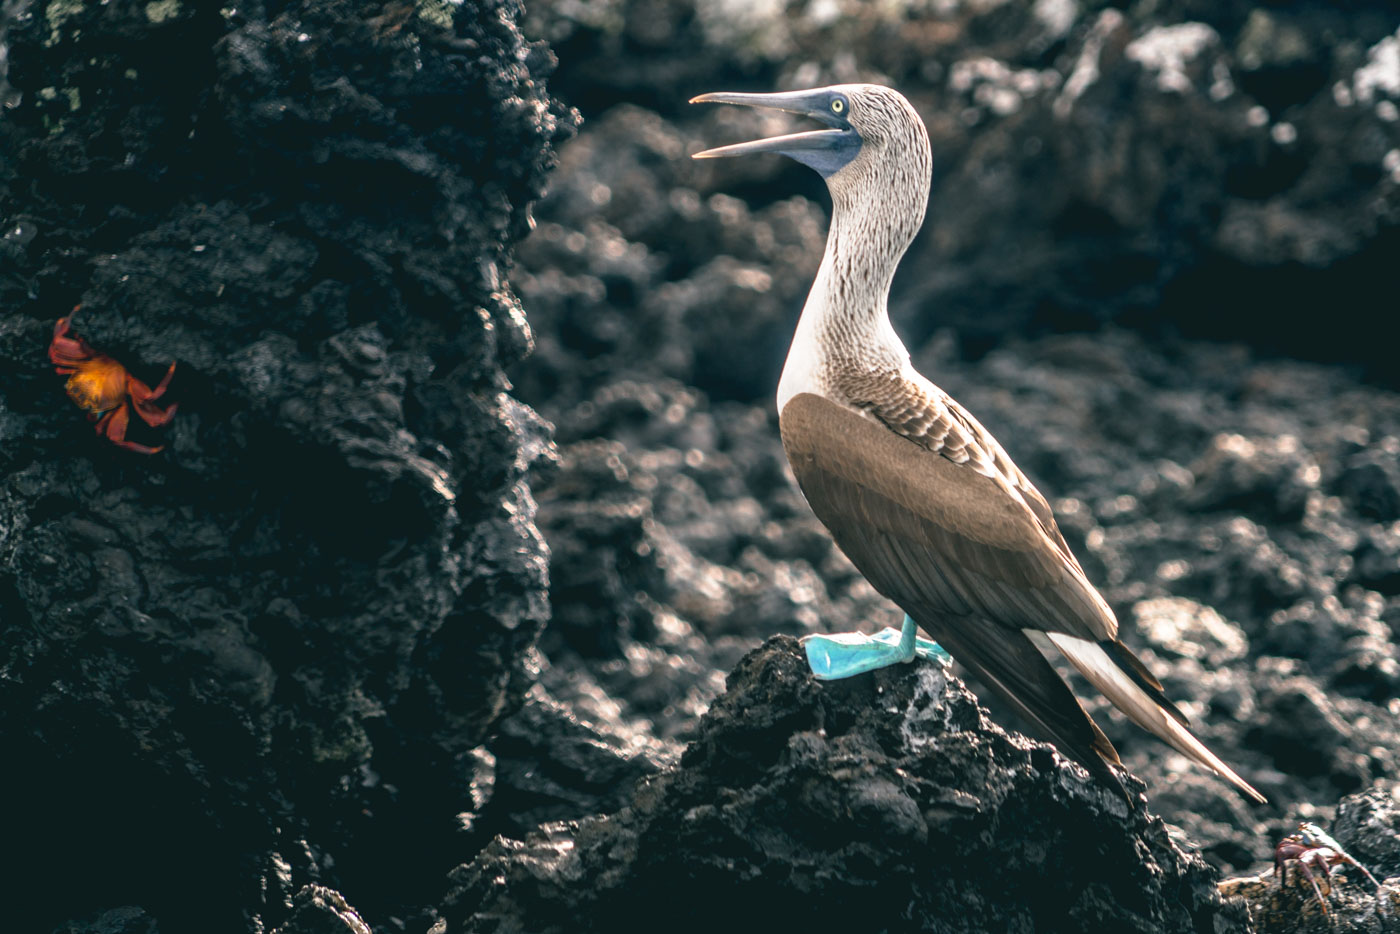 Blue footed booby eyeing a red crab on the lava rocks on Isabela Island